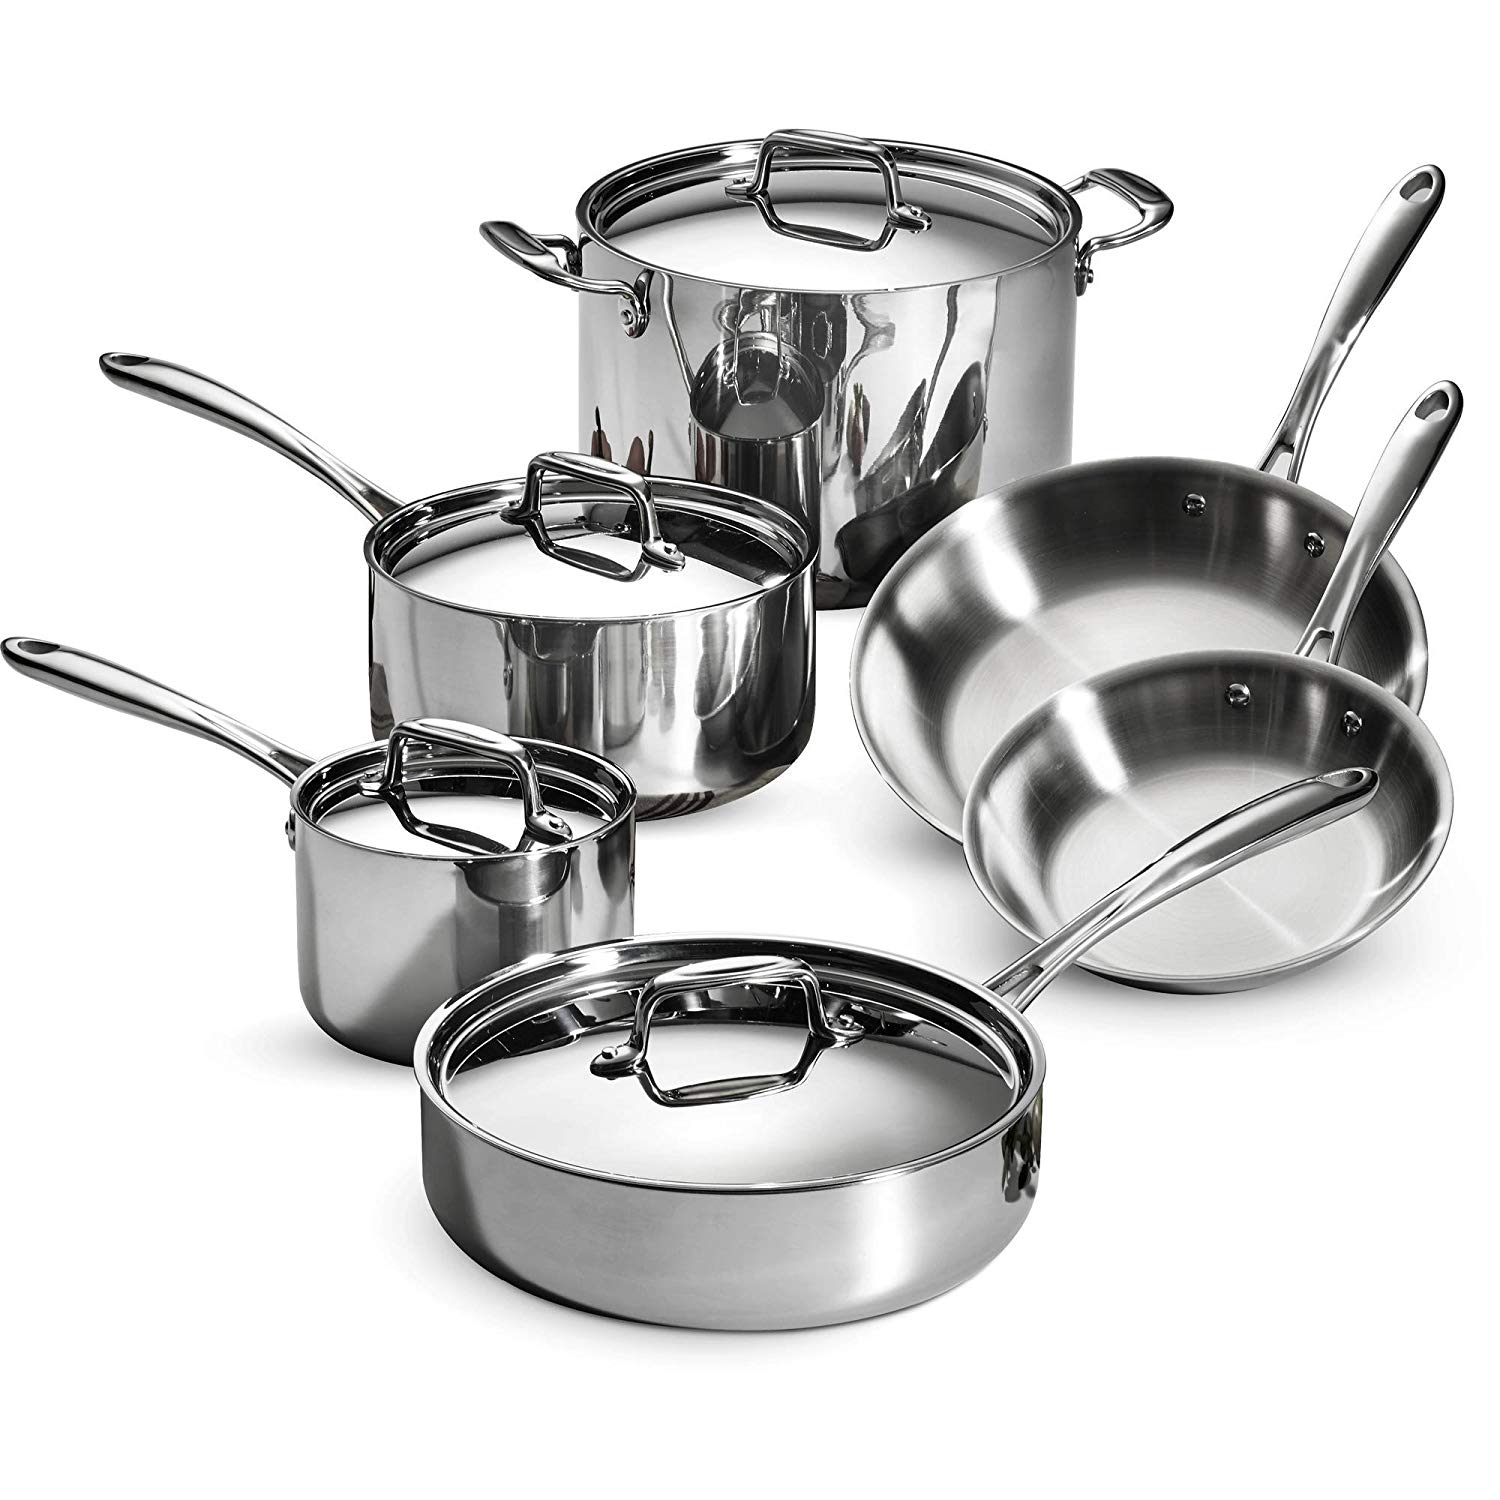 Tramontina 10-Piece Tri-Ply Clad Cookware Set, Stainless Steel